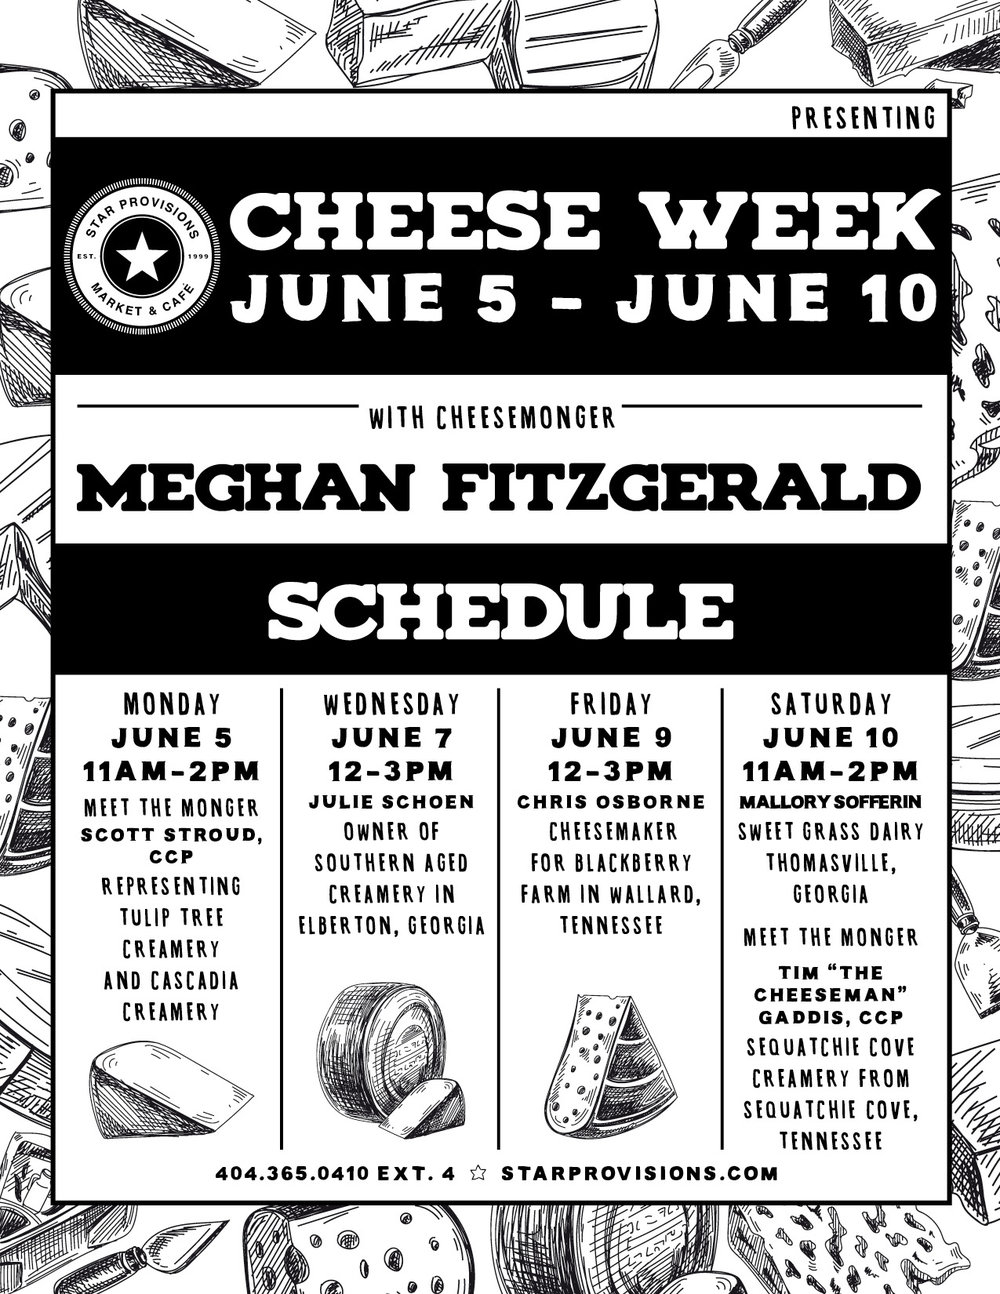 0517-sp-cheeseweekflyer.jpg